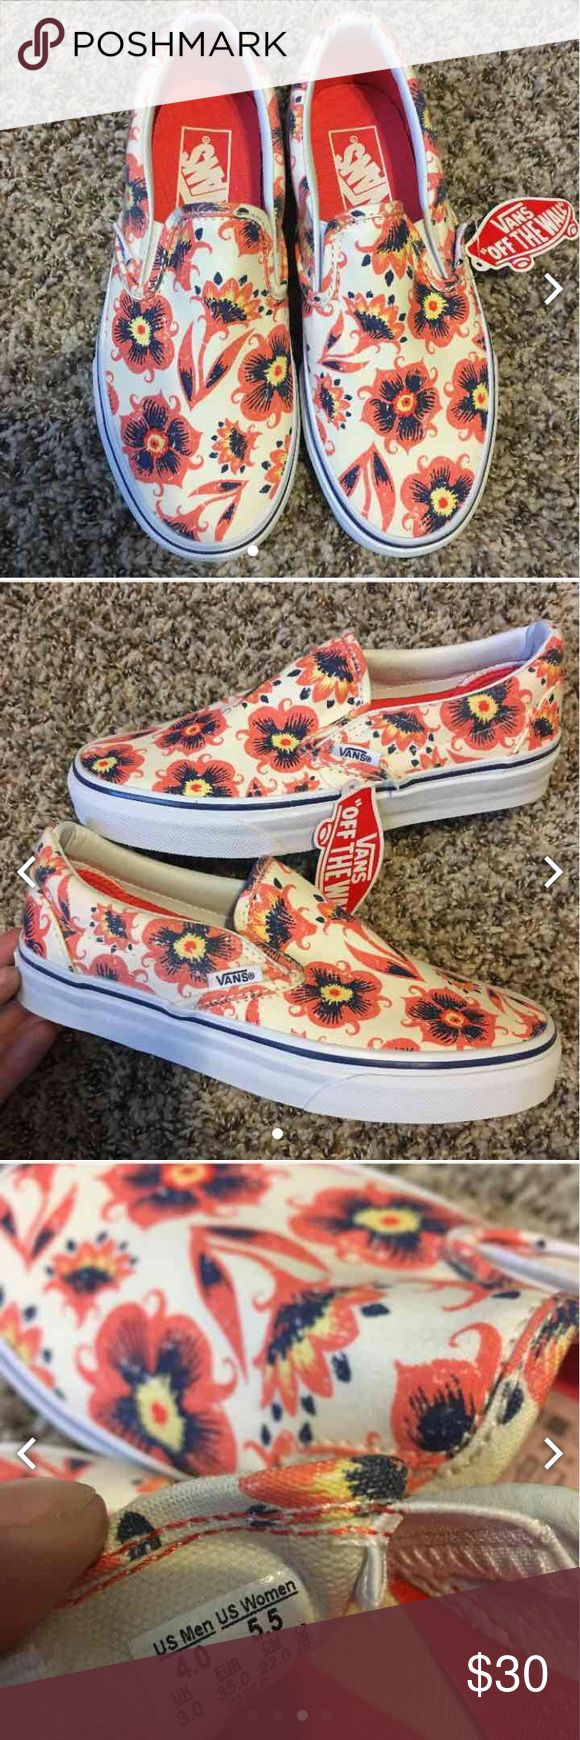 👀 New in box Vans slip on Coral floral low tops Never worn! Comes with original box! Great condition! Please use offer button to make any reasonable offers. Vans Shoes